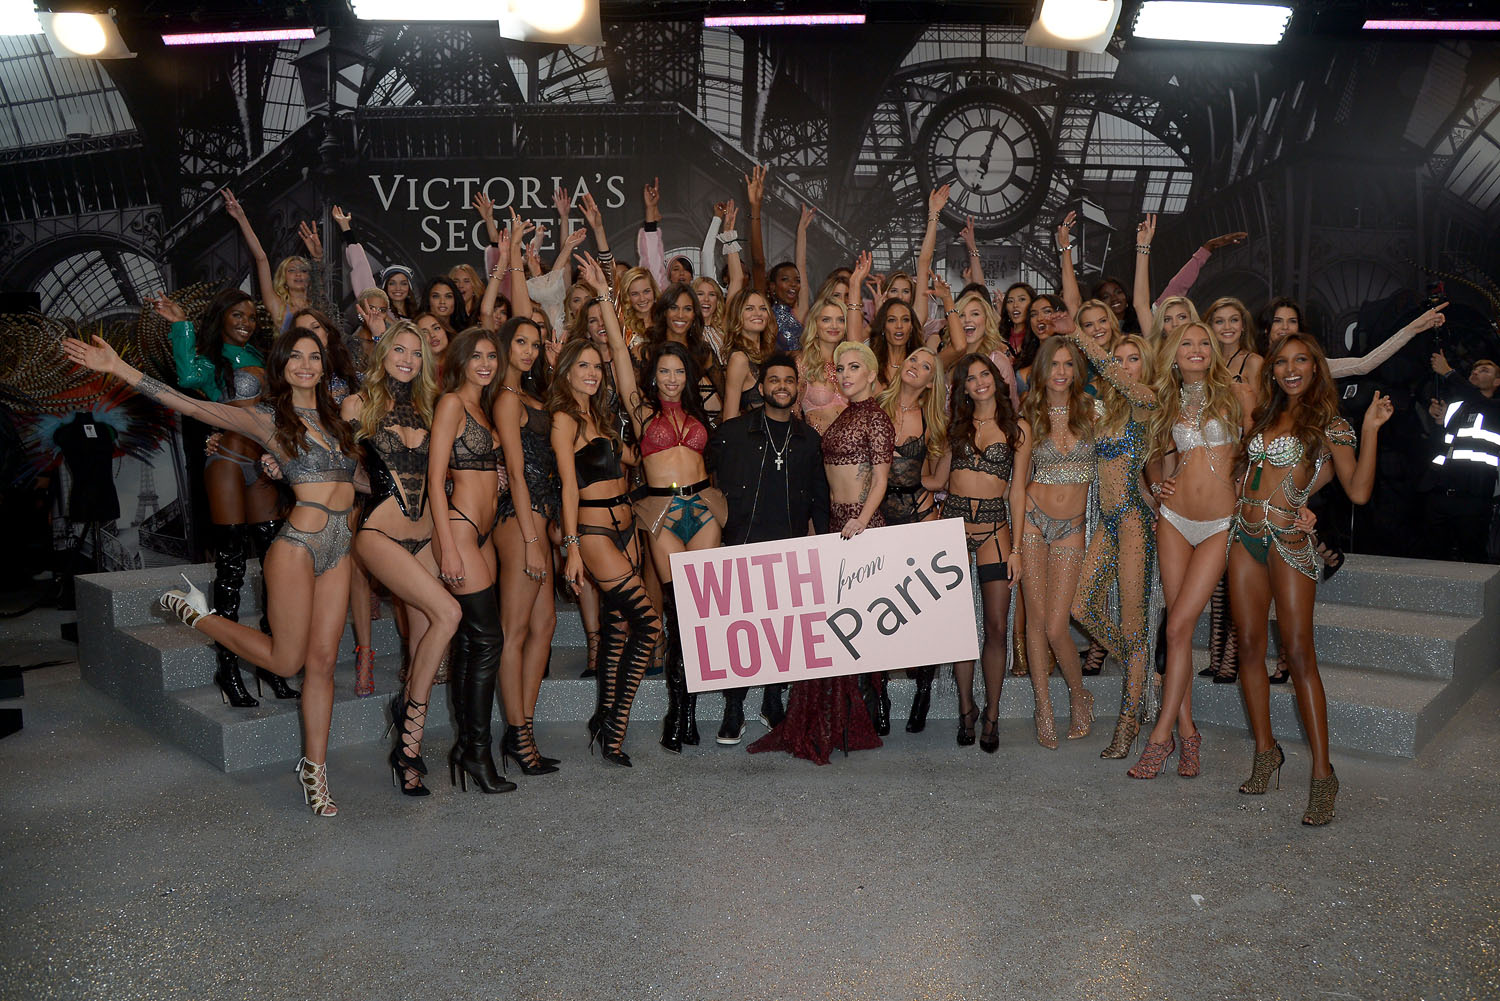 PARIS, FRANCE - NOVEMBER 30: Models pose backstage with Lady Gaga and The Weeknd during the Victoria's Secret Fashion Show on November 30, 2016 in Paris, France. (Photo by Dominique Charriau/Getty Images for Victoria's Secret)